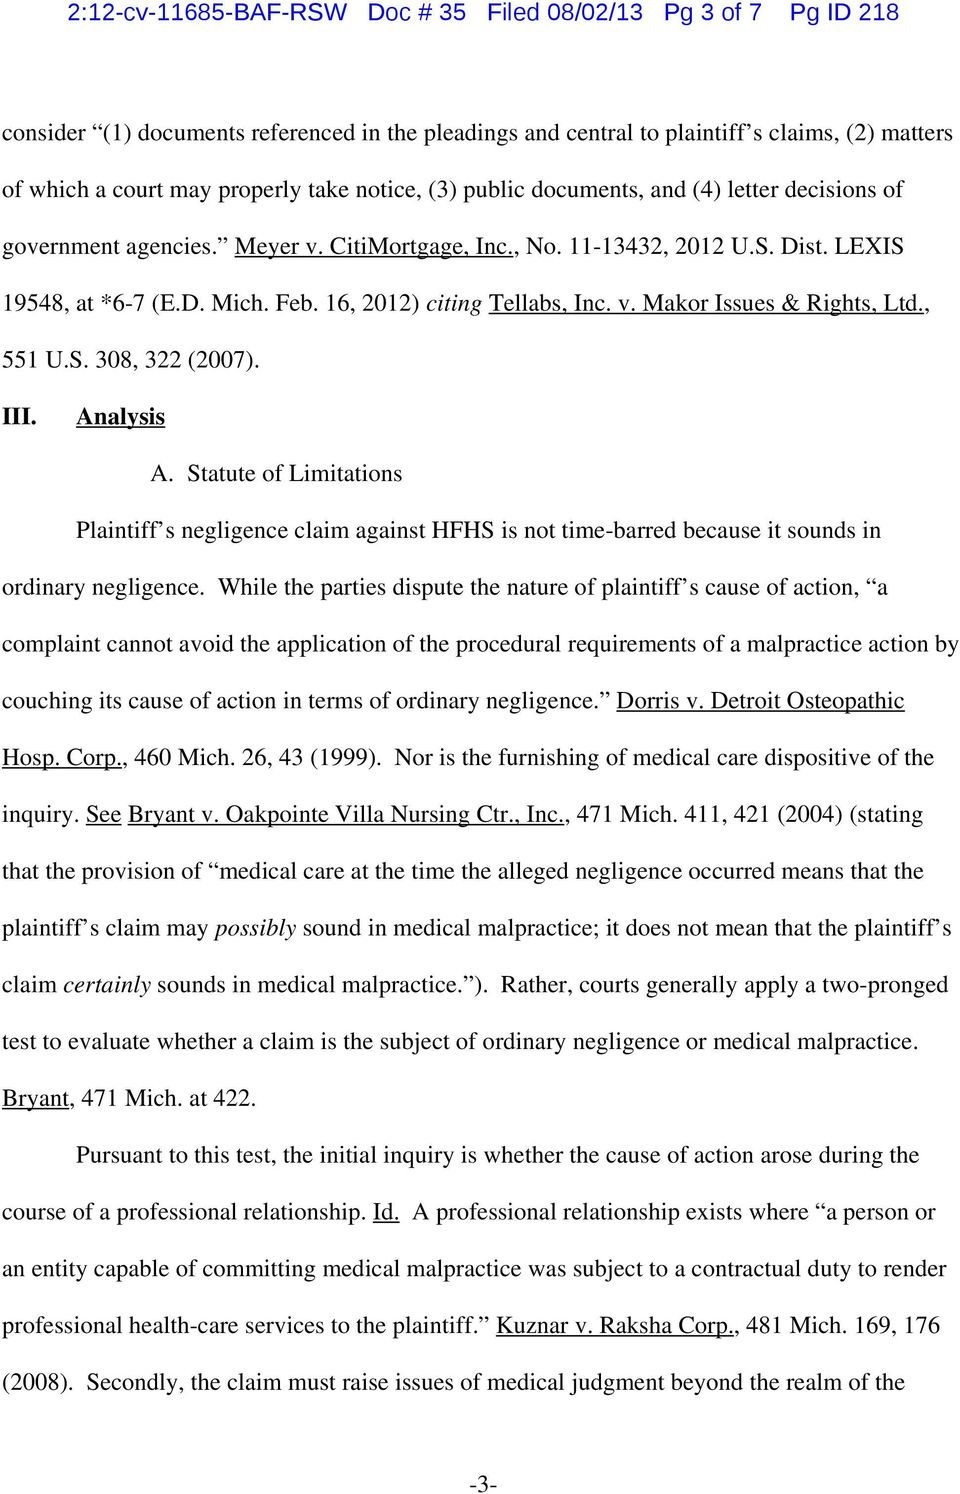 16, 2012) citing Tellabs, Inc. v. Makor Issues & Rights, Ltd., 551 U.S. 308, 322 (2007). III. Analysis A.